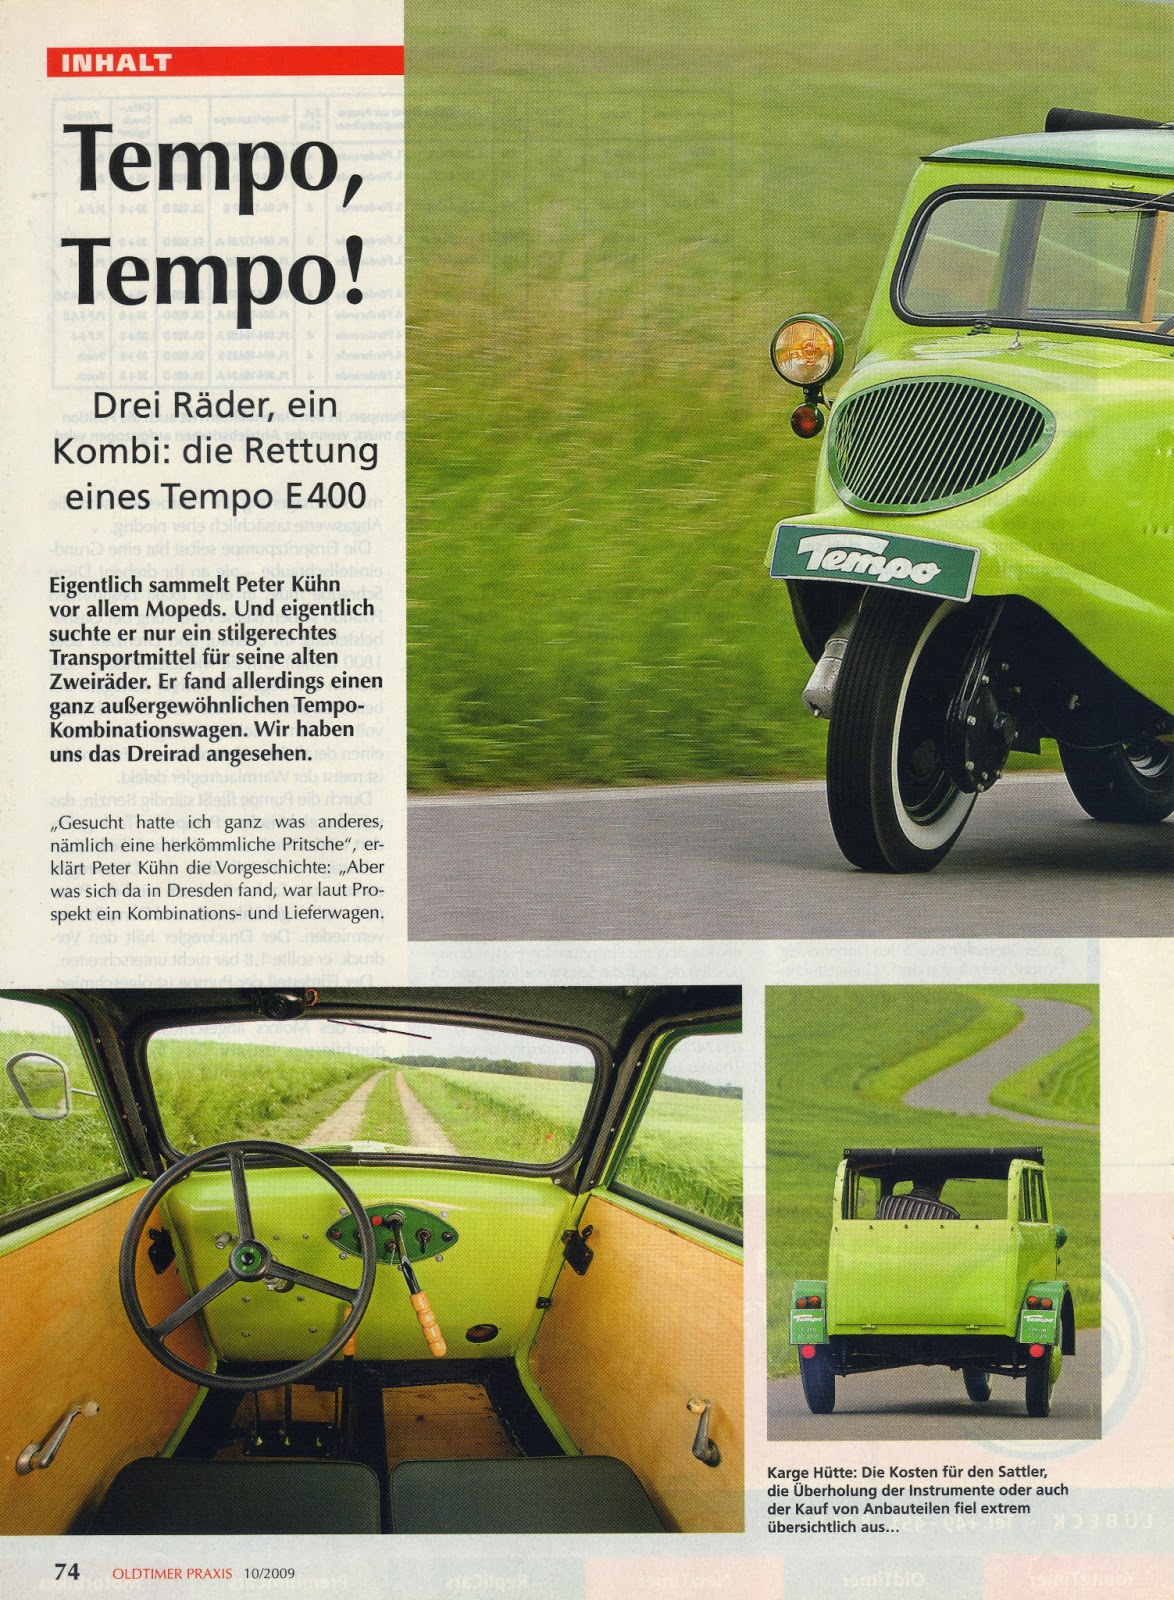 Project Tempo January 2013